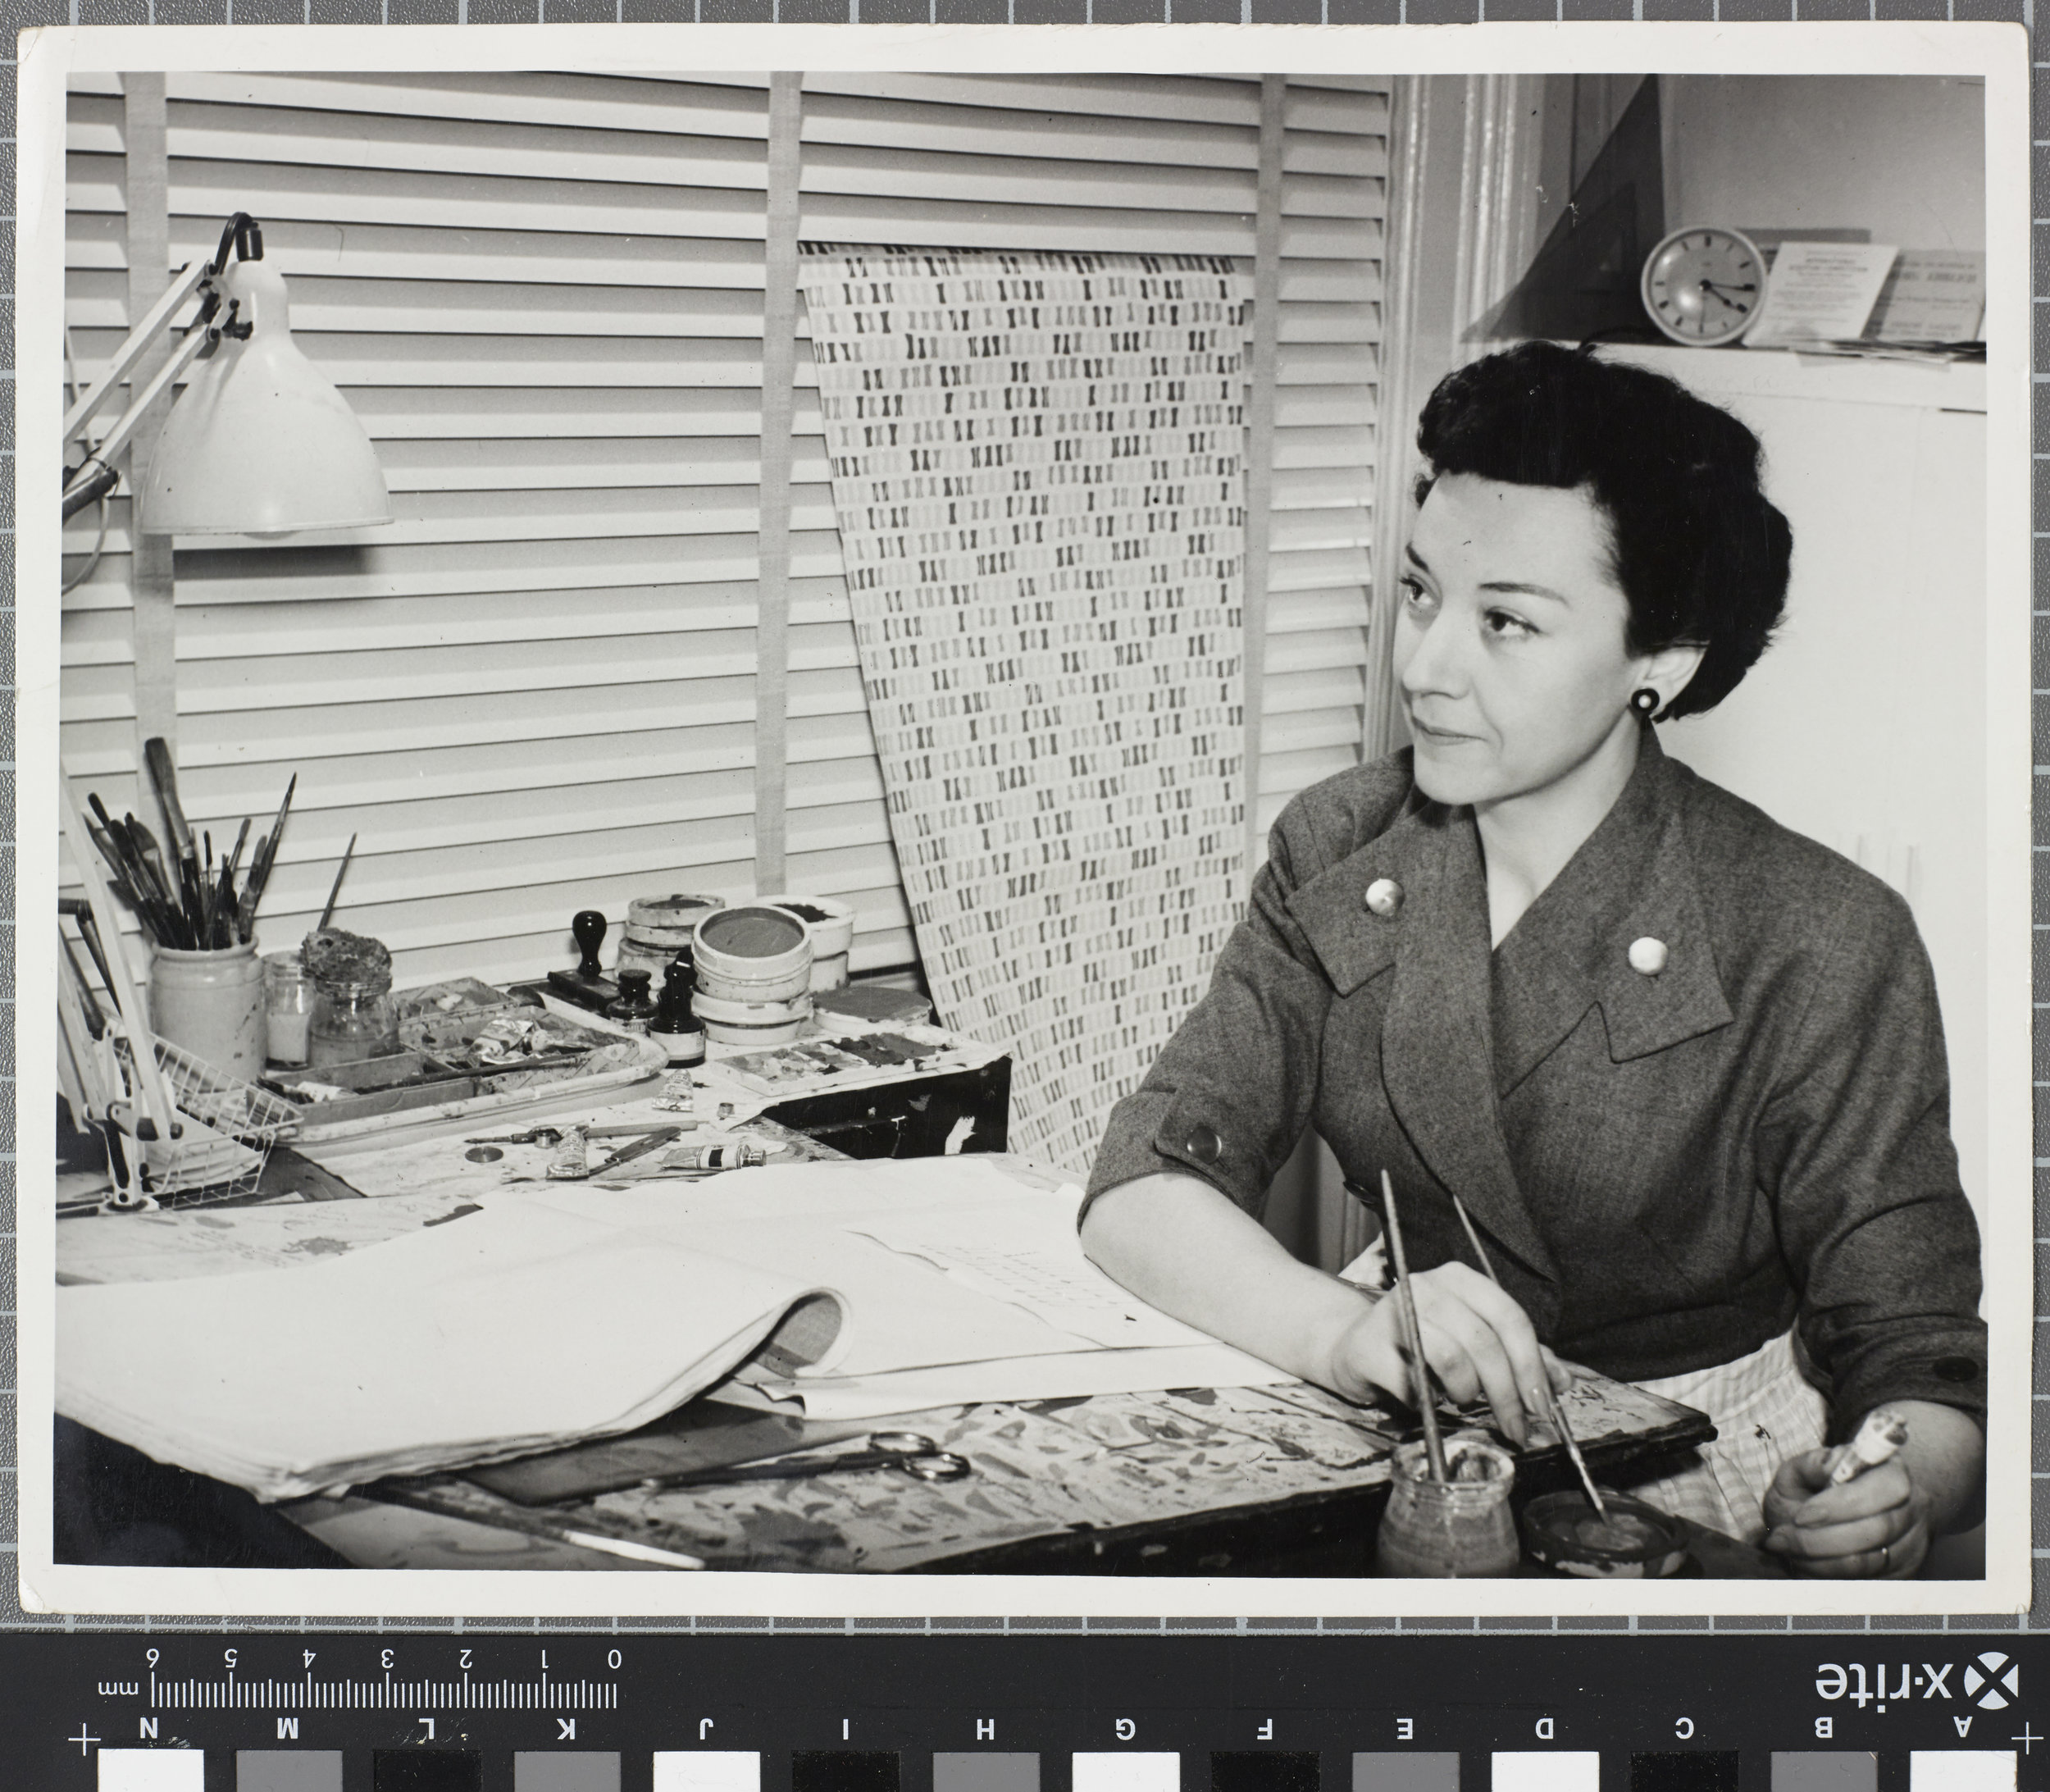 Lucienne Day with Diabolo wallpaper (1951) in Cheyne Walk studio. Copyright the Robin & Lucienne Day Foundation.